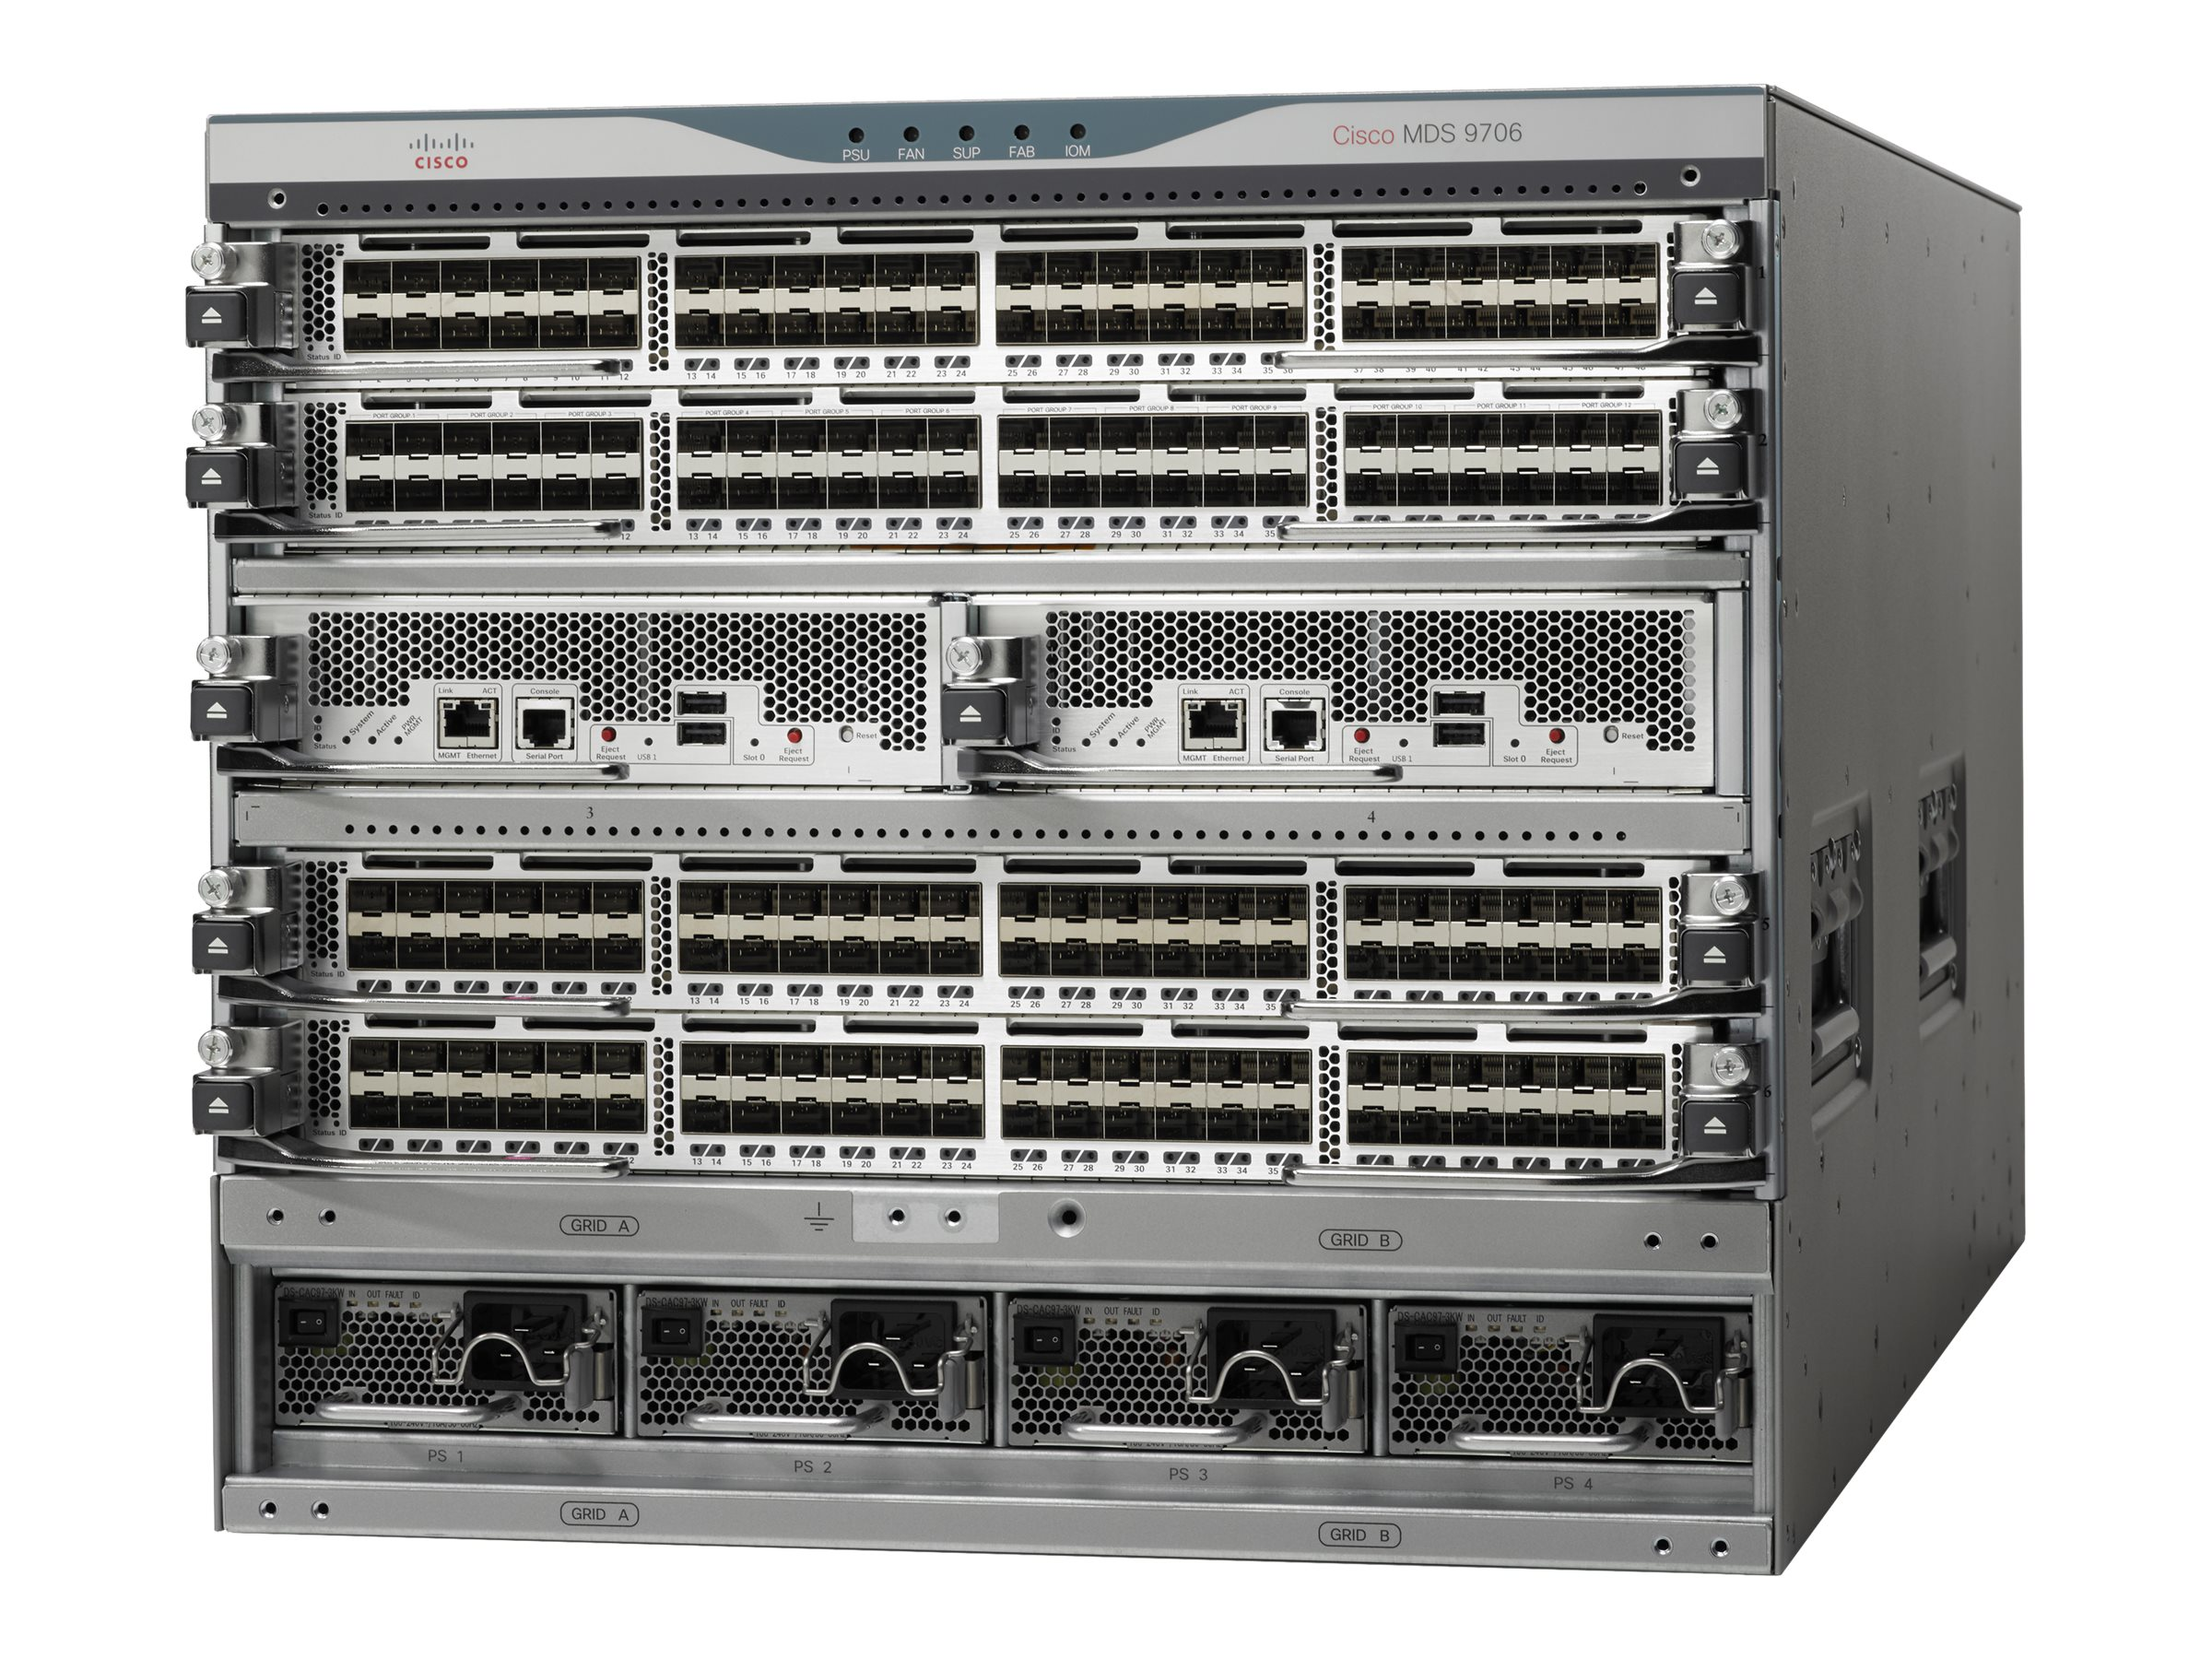 Cisco MDS 9706 9U RM Multilayer Director Managed Switch 2xSupervisor slots  6xExpansion slots 4x3000W